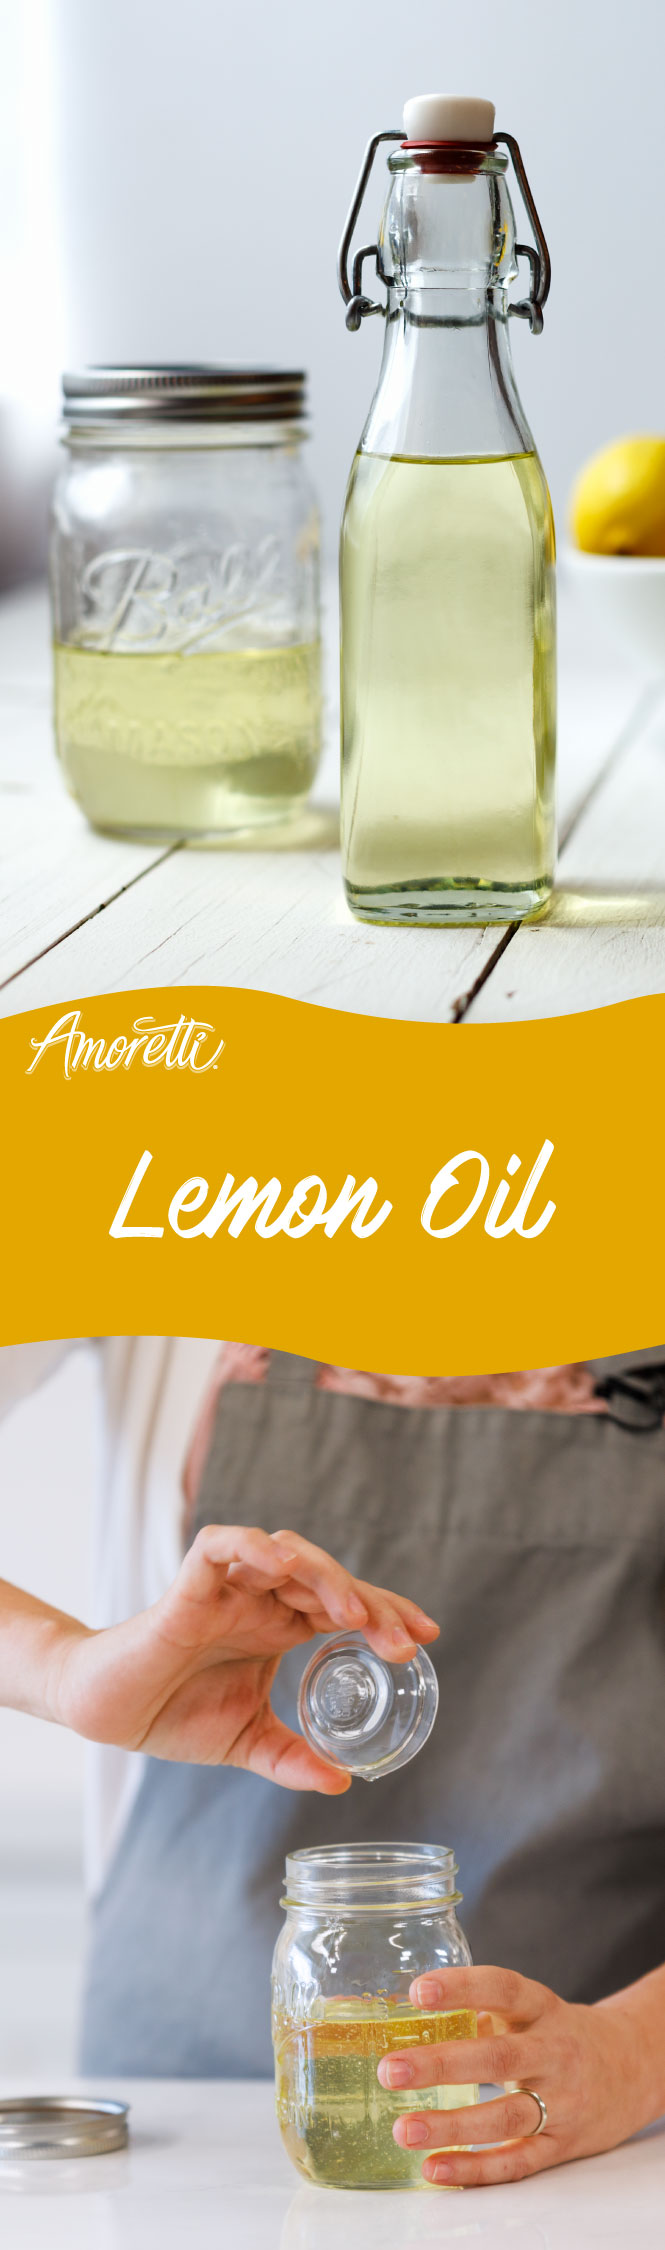 Add a splash of flavor to any meal with your very own house-made Lemon Oil!